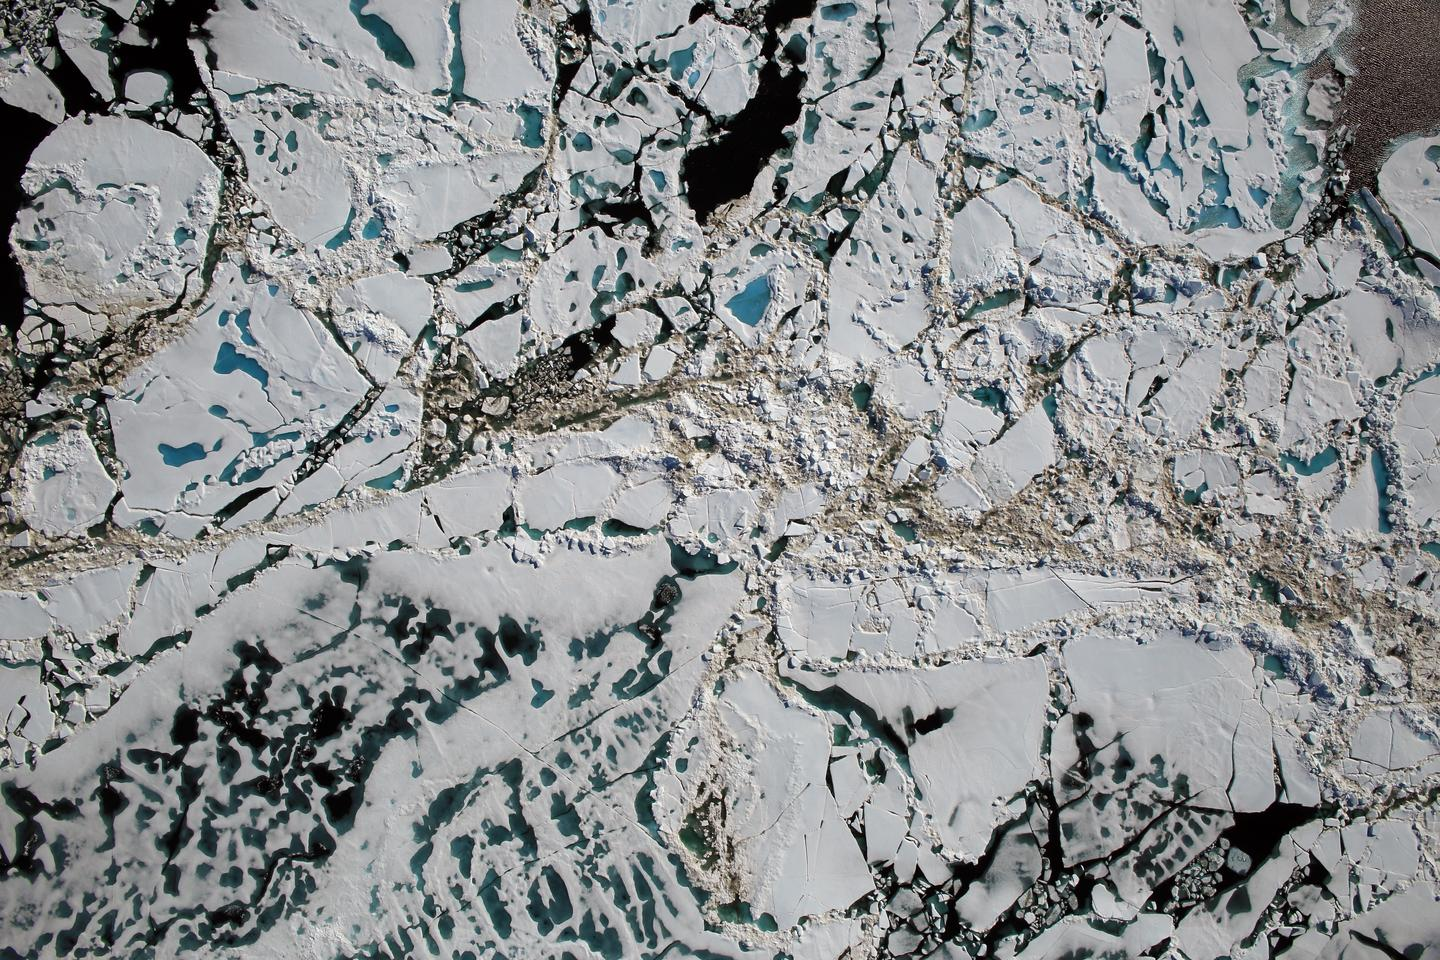 An image of Arctic sea ice captured from1,500 feetduring an Operation IceBridge mission